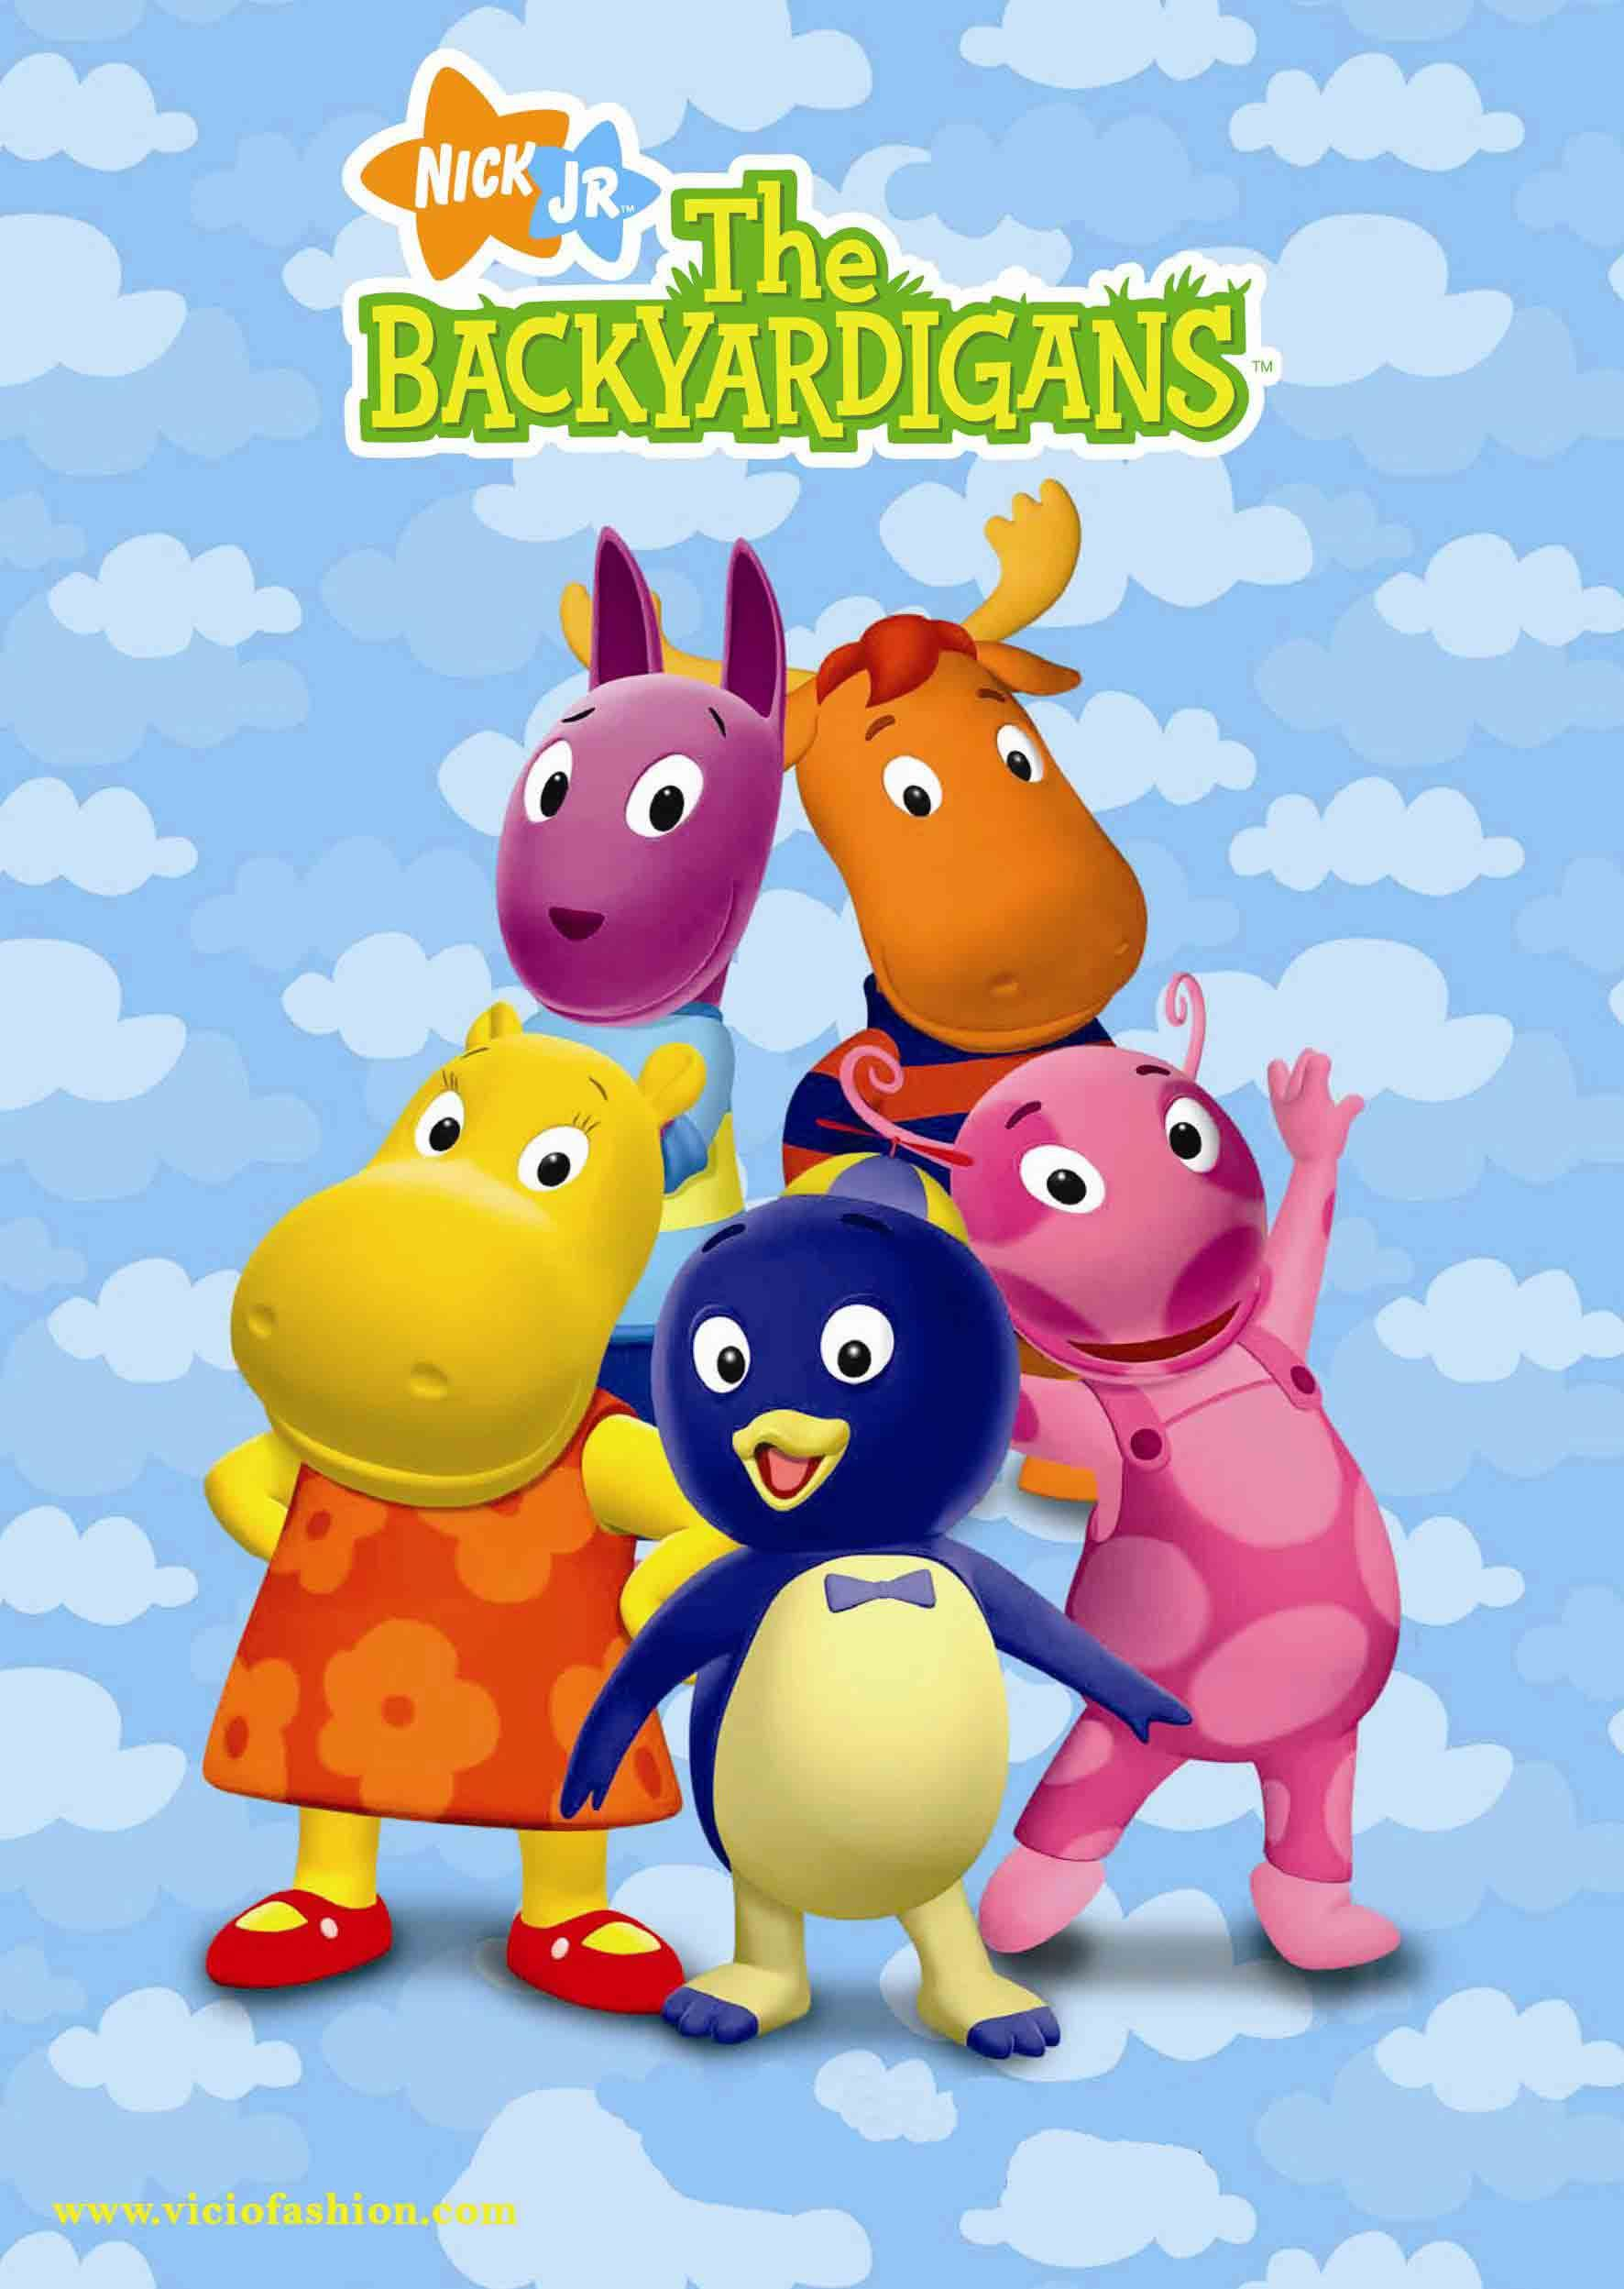 The Backyardigans Childhood Tv Shows Old Kids Shows Childhood Movies